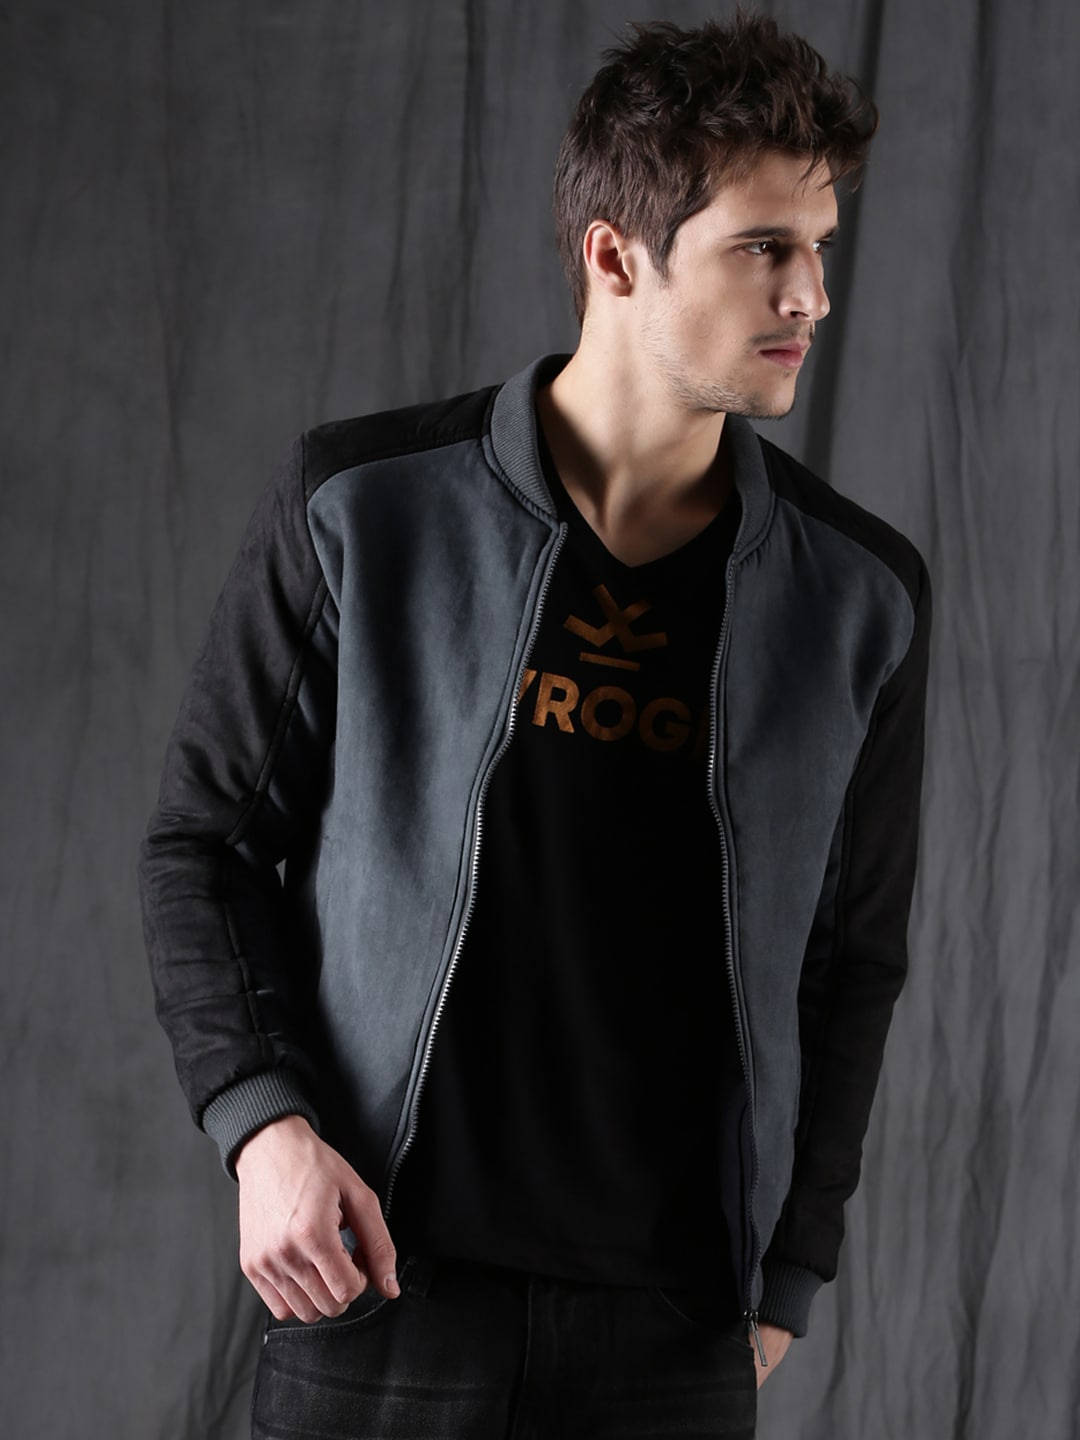 328e73edfd759 Wrogn Casual Jackets - Buy Wrogn Casual Jackets online in India